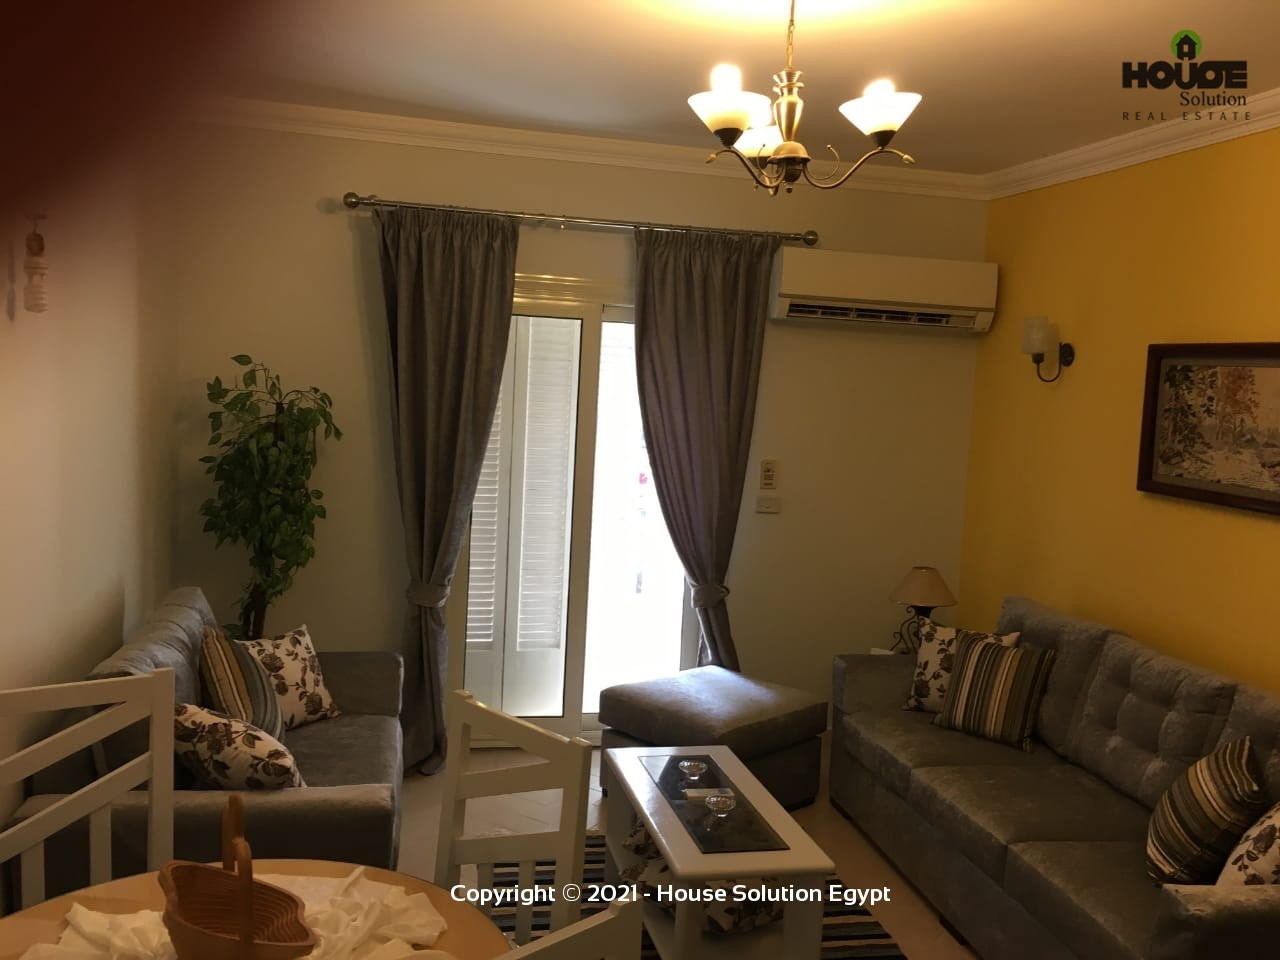 Stunning Furnished Apartment For Rent In Degla El Maadi Cairo Egypt - 4967 Featured Image